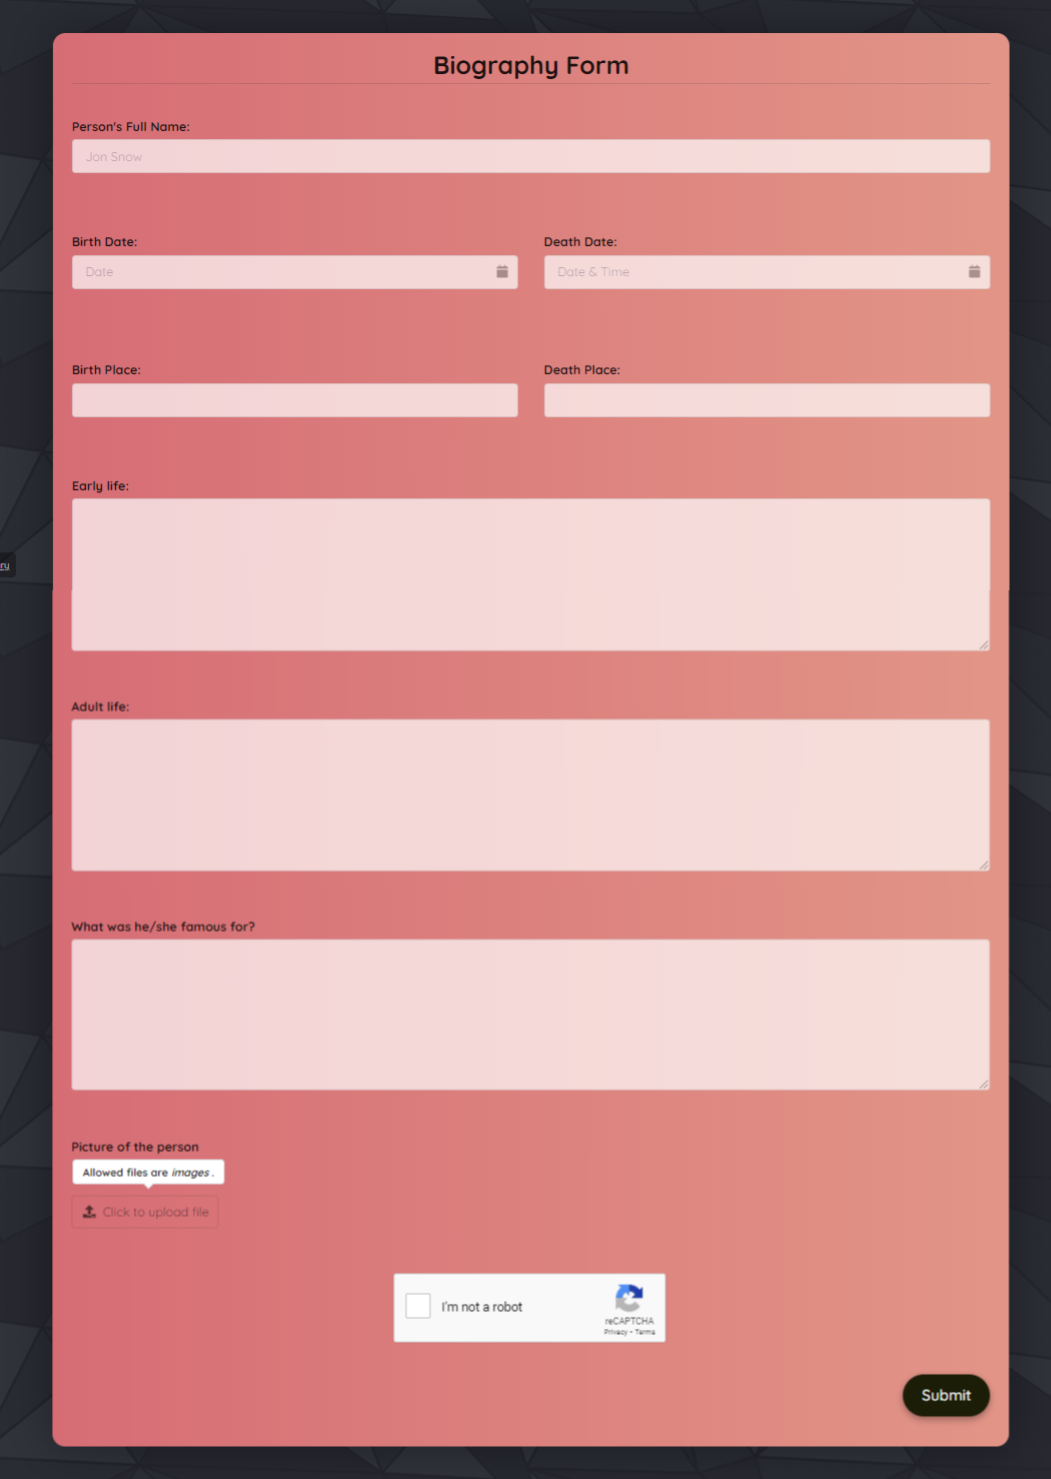 Biography Form Template template